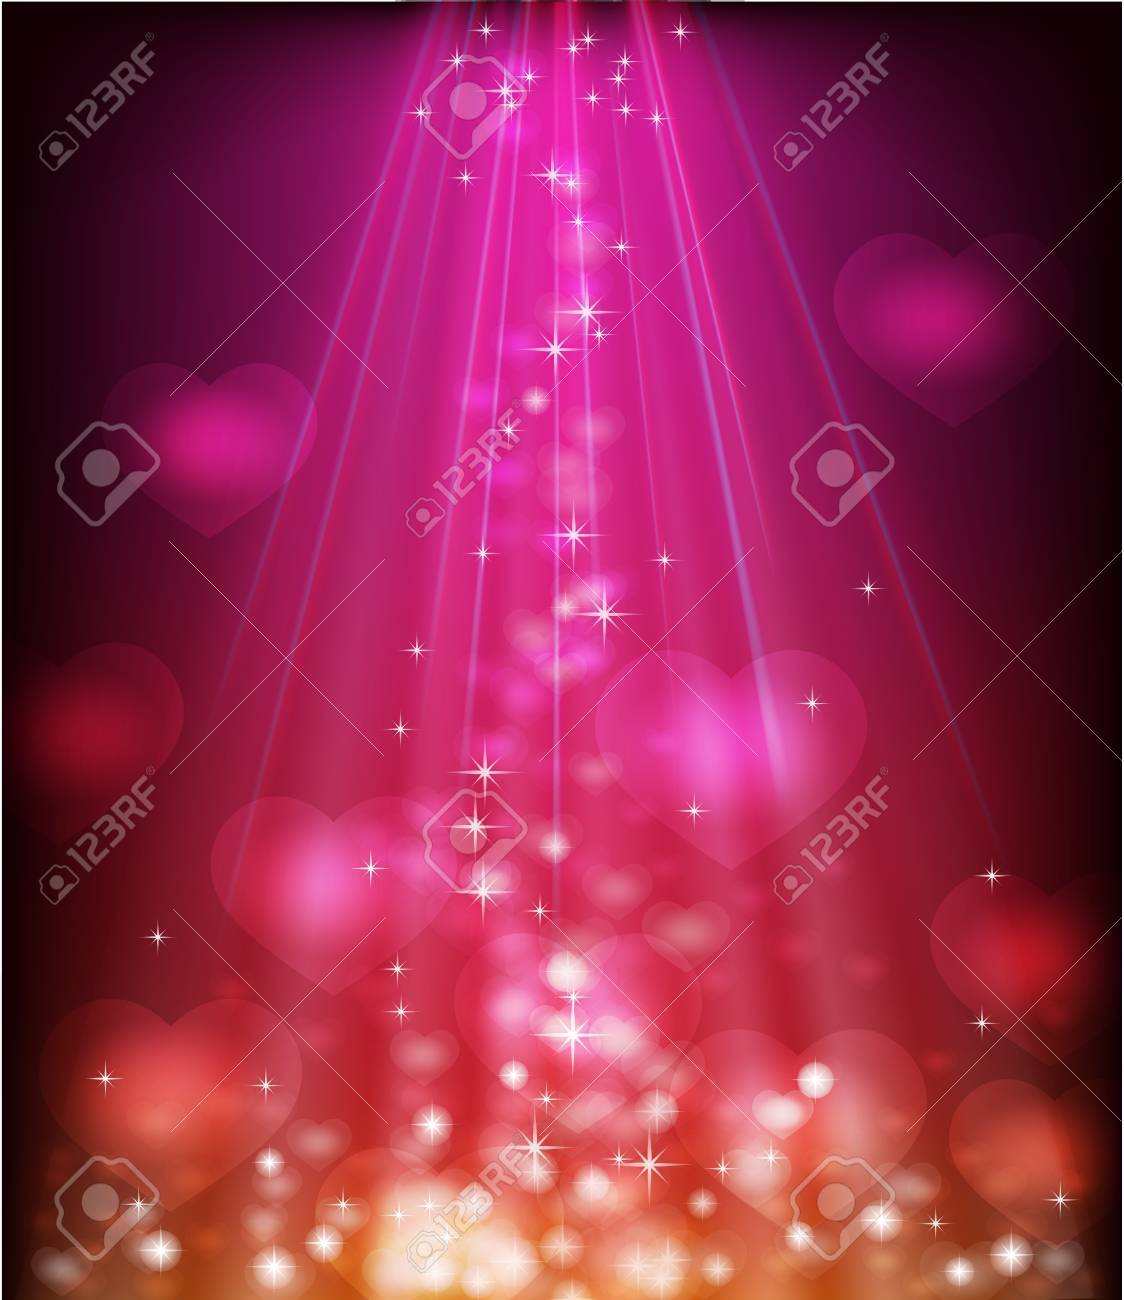 Abstract glowing purple background with shiny hearts Stock Vector - 17216125